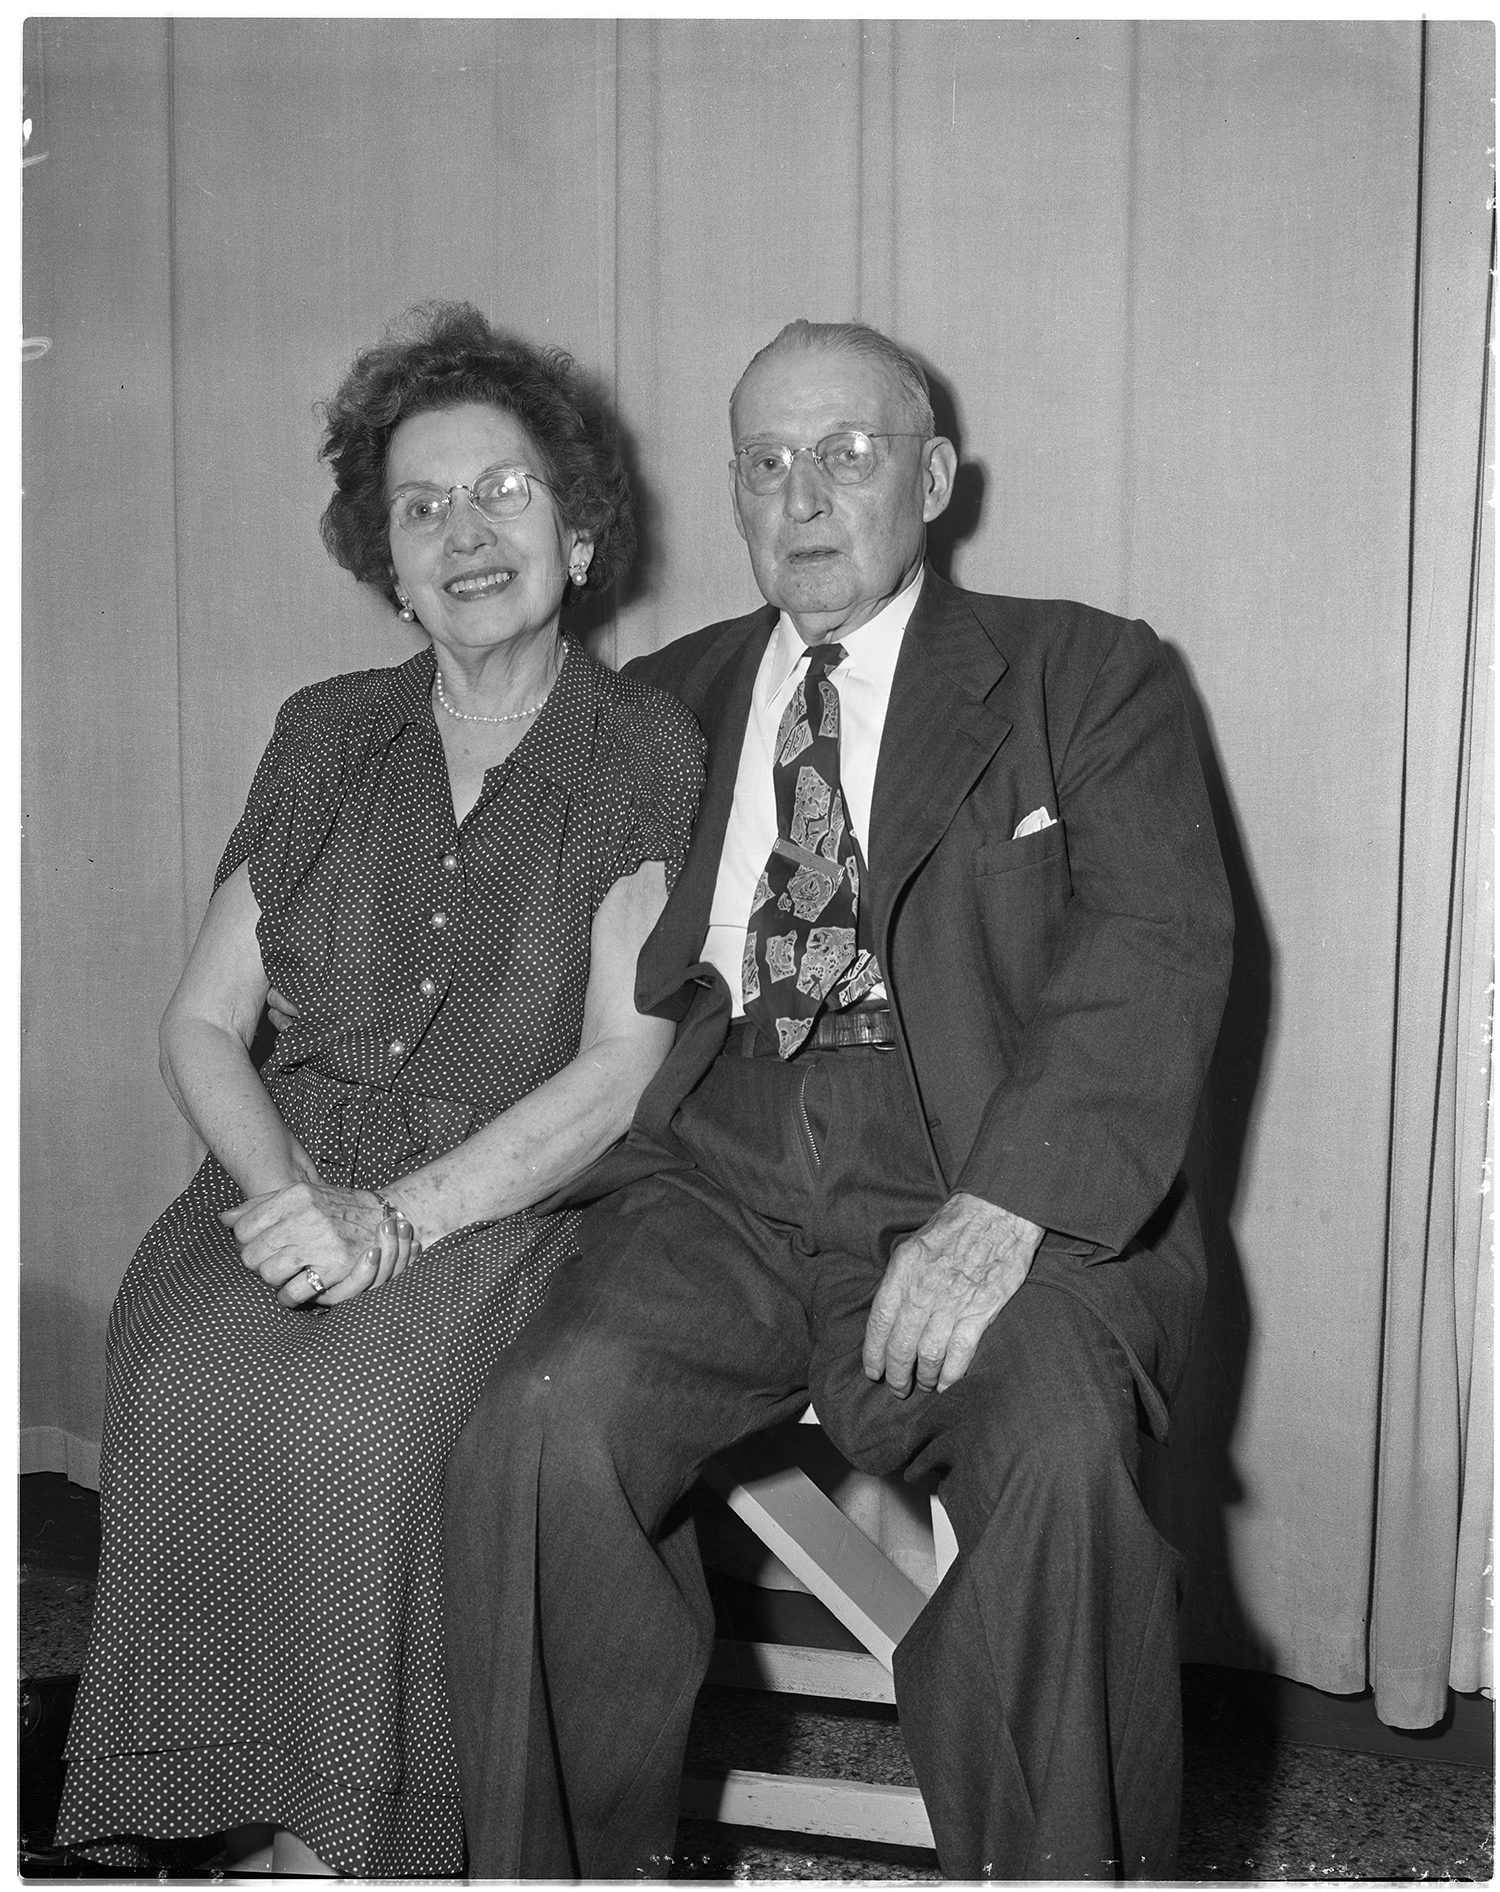 James and Margaret Moore of Chicago, formerly of Springfield, celebrated their 50th anniversary inJune 1954with a Mass of Thanksgiving at St. Joseph's Church where they were married in 1904. A breakfast for immediate family at the Southern Air, followed by a reception for friends and relatives was also held. Margaret Moore taught at the Sherman and Iles Junction schools before her marriage. Mr. Moore was a retired grocer.